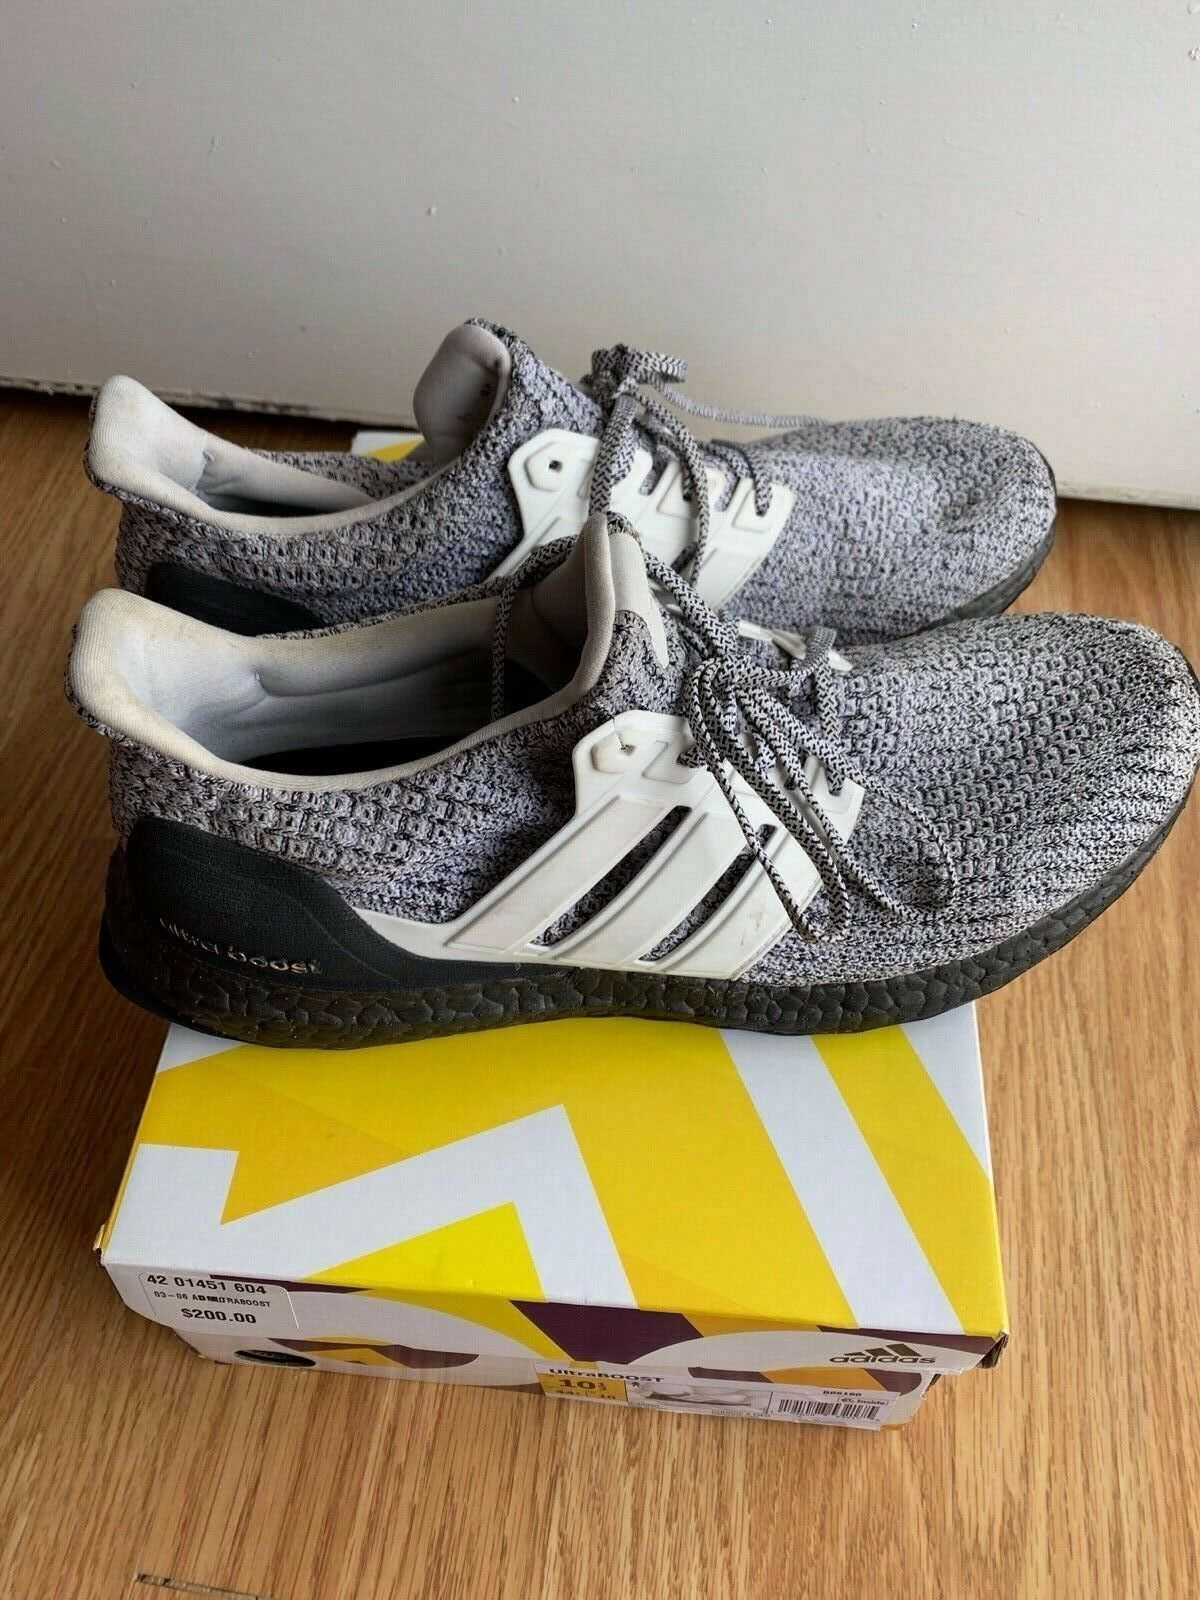 959f42a16 Adidas Ultra BOOST 4.0 Oreo BB6180 Cookies and Cream LTD Men s Size 10.5 US